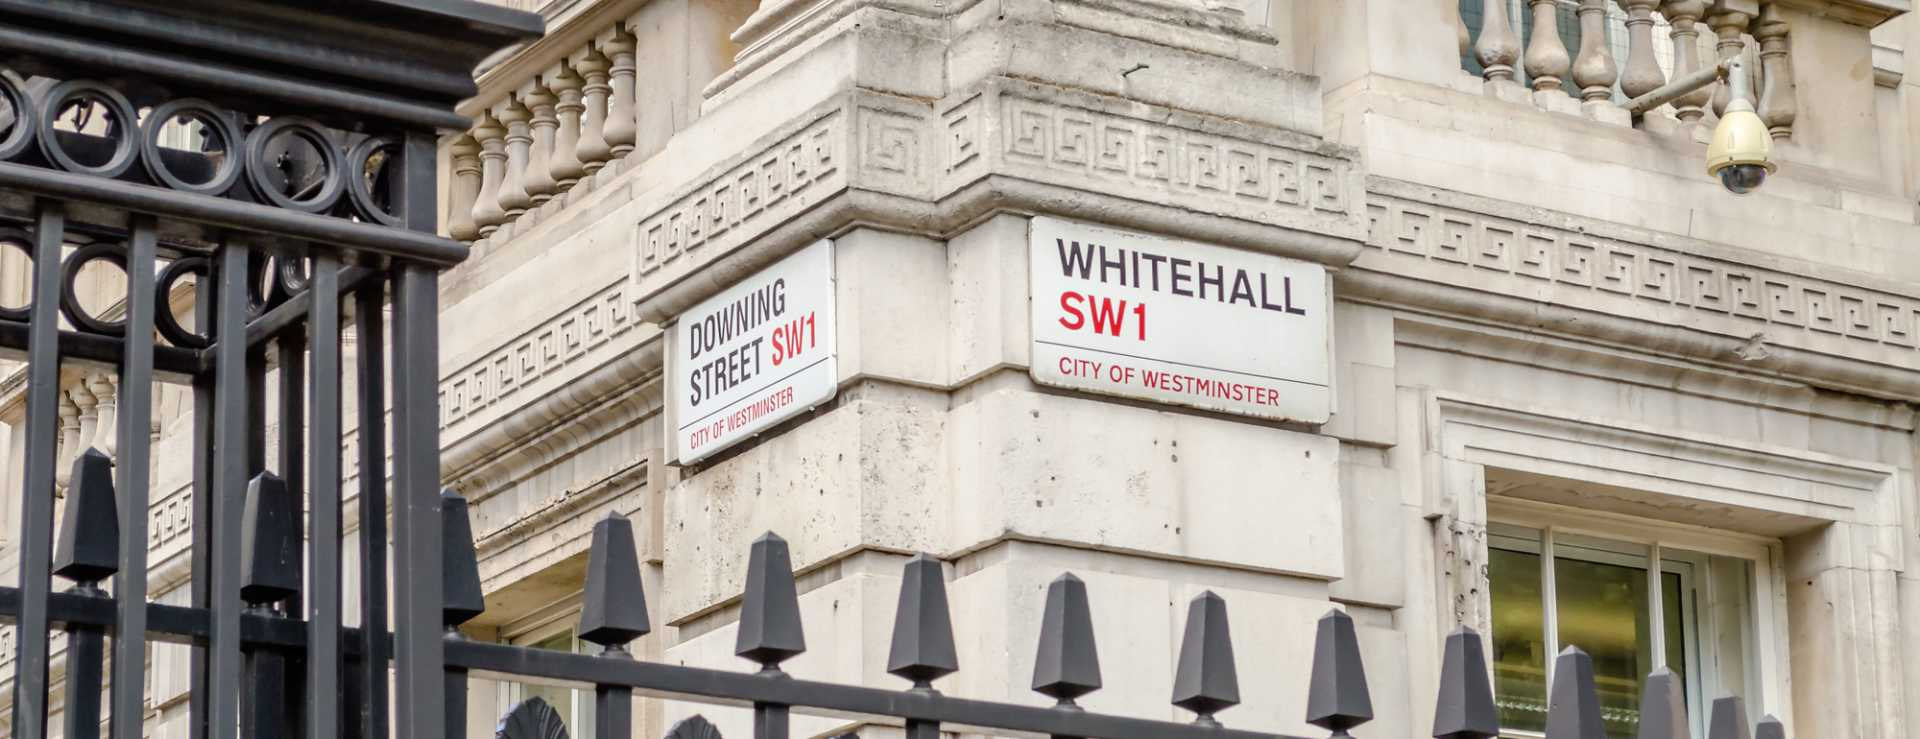 CROP - Whitehall Downing Street in London - image courtesy of Depositphotos.